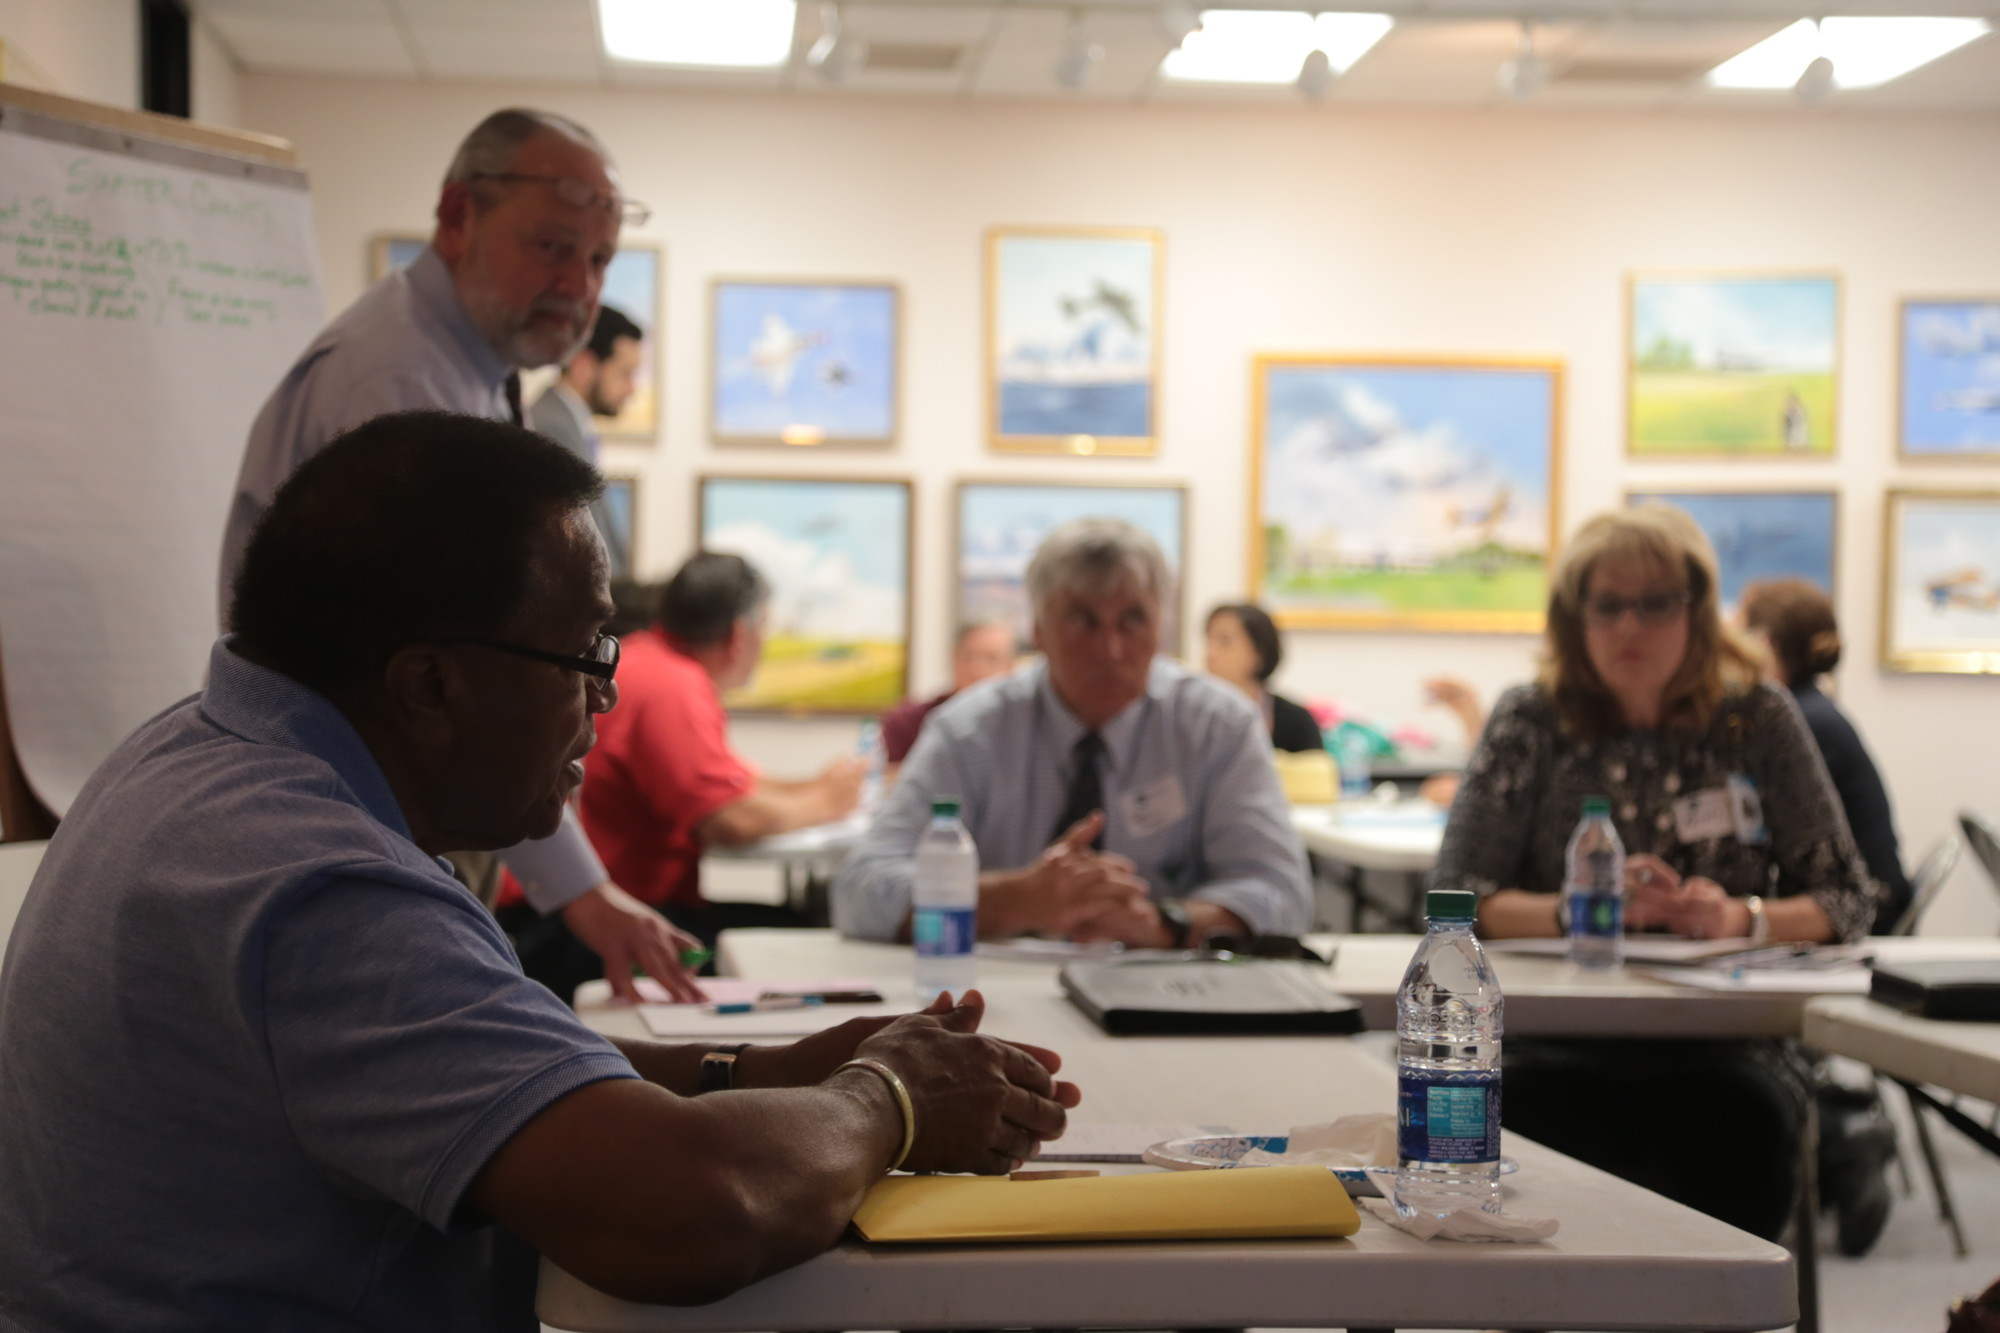 ADRIENNE SARVIS / THE SUMTER ITEMSumter County Councilman Gene Baten gives ideas about how to tackle the opioid problem in Sumter during a strategic work session hosted by Santee-Lynches Regional Council of Governments on Wednesday.